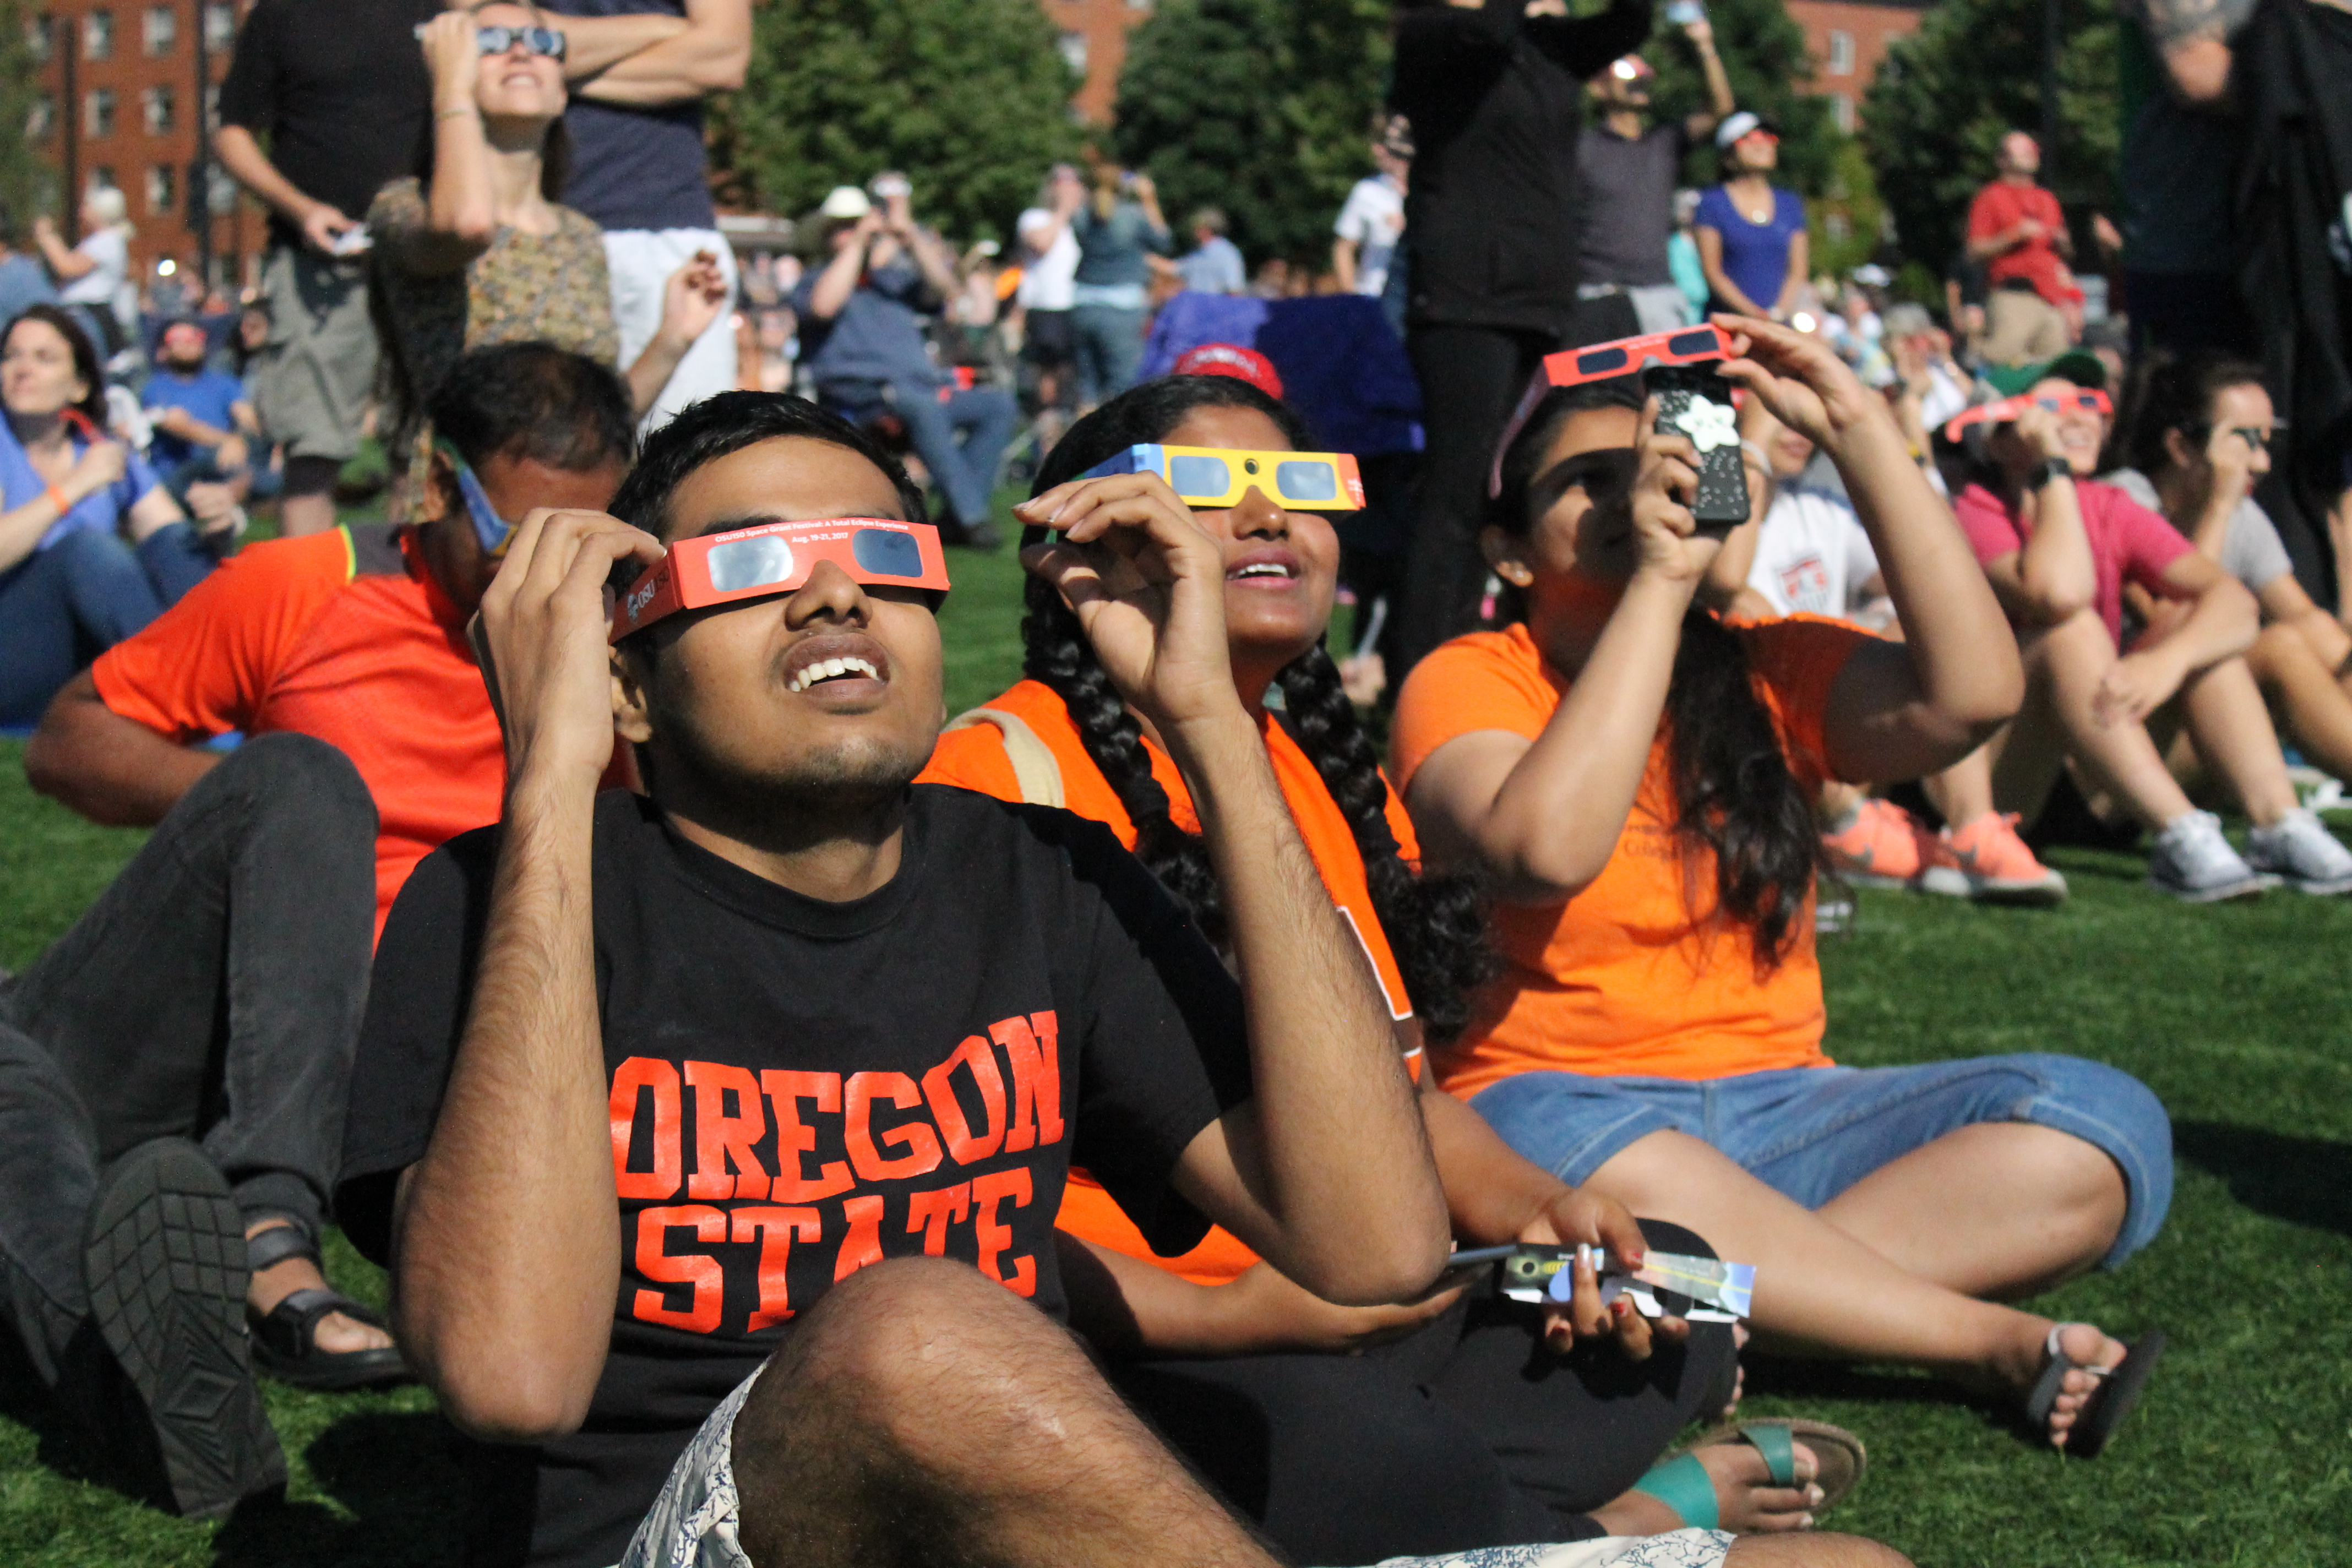 solar-eclipse-glasses---underluckystars